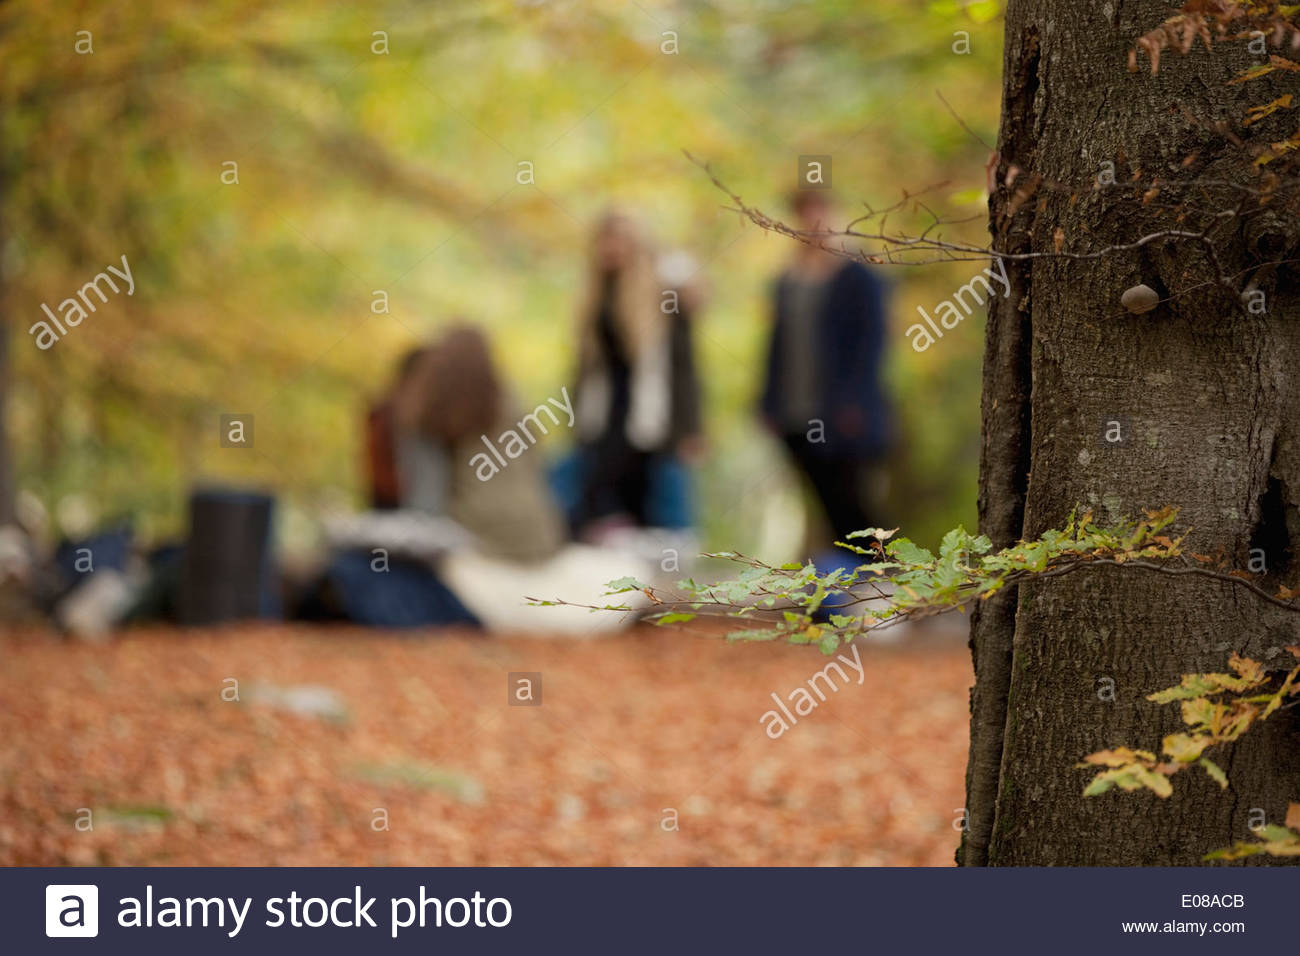 Friends camping in forest - Stock Image